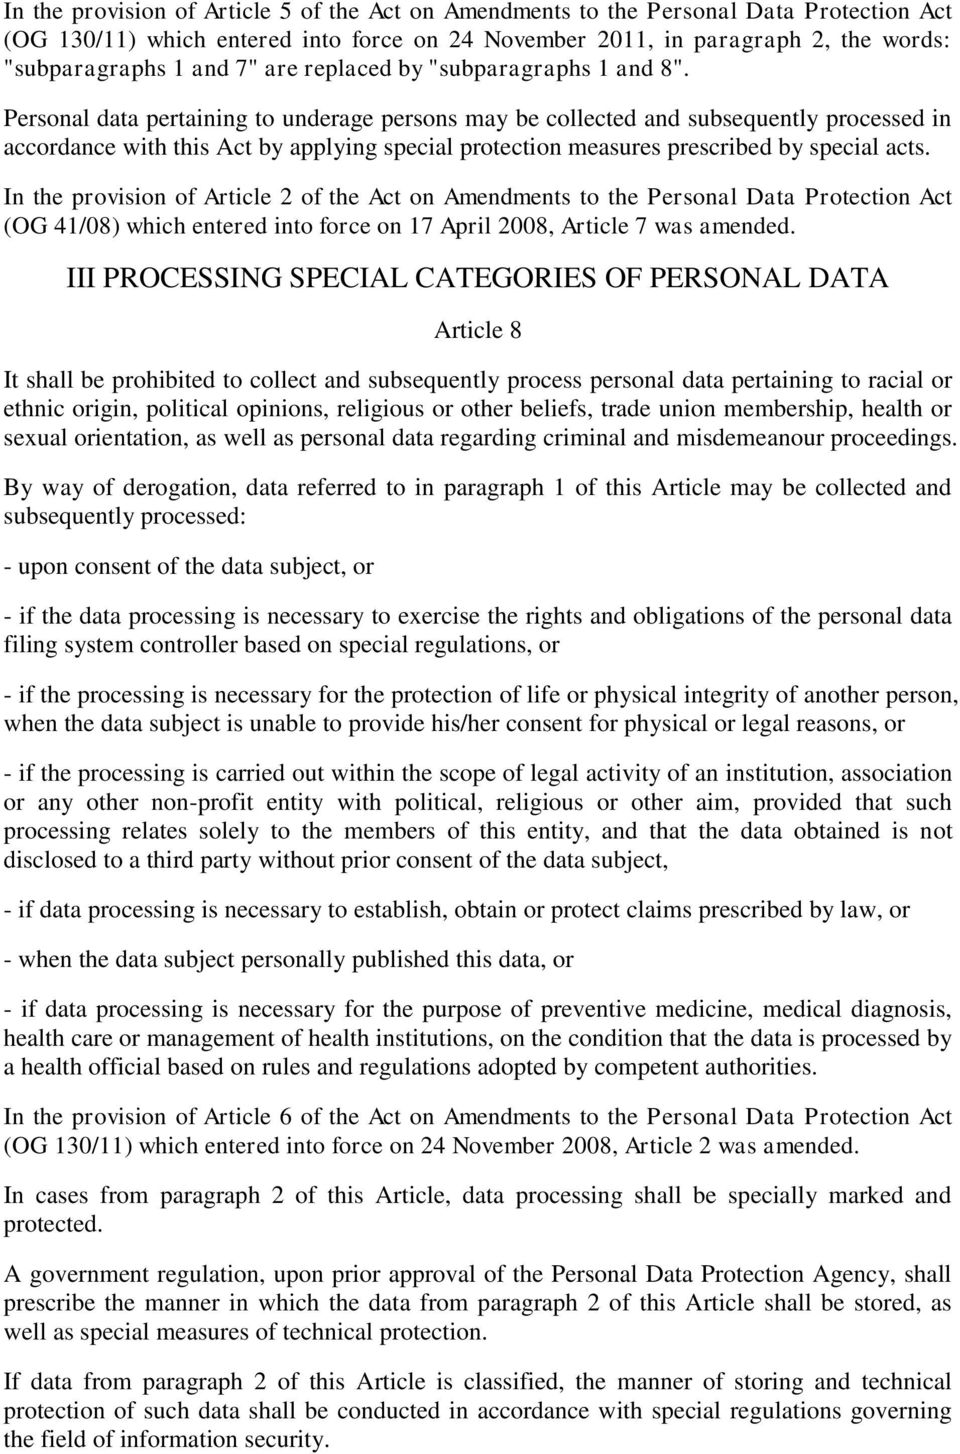 Personal data pertaining to underage persons may be collected and subsequently processed in accordance with this Act by applying special protection measures prescribed by special acts.